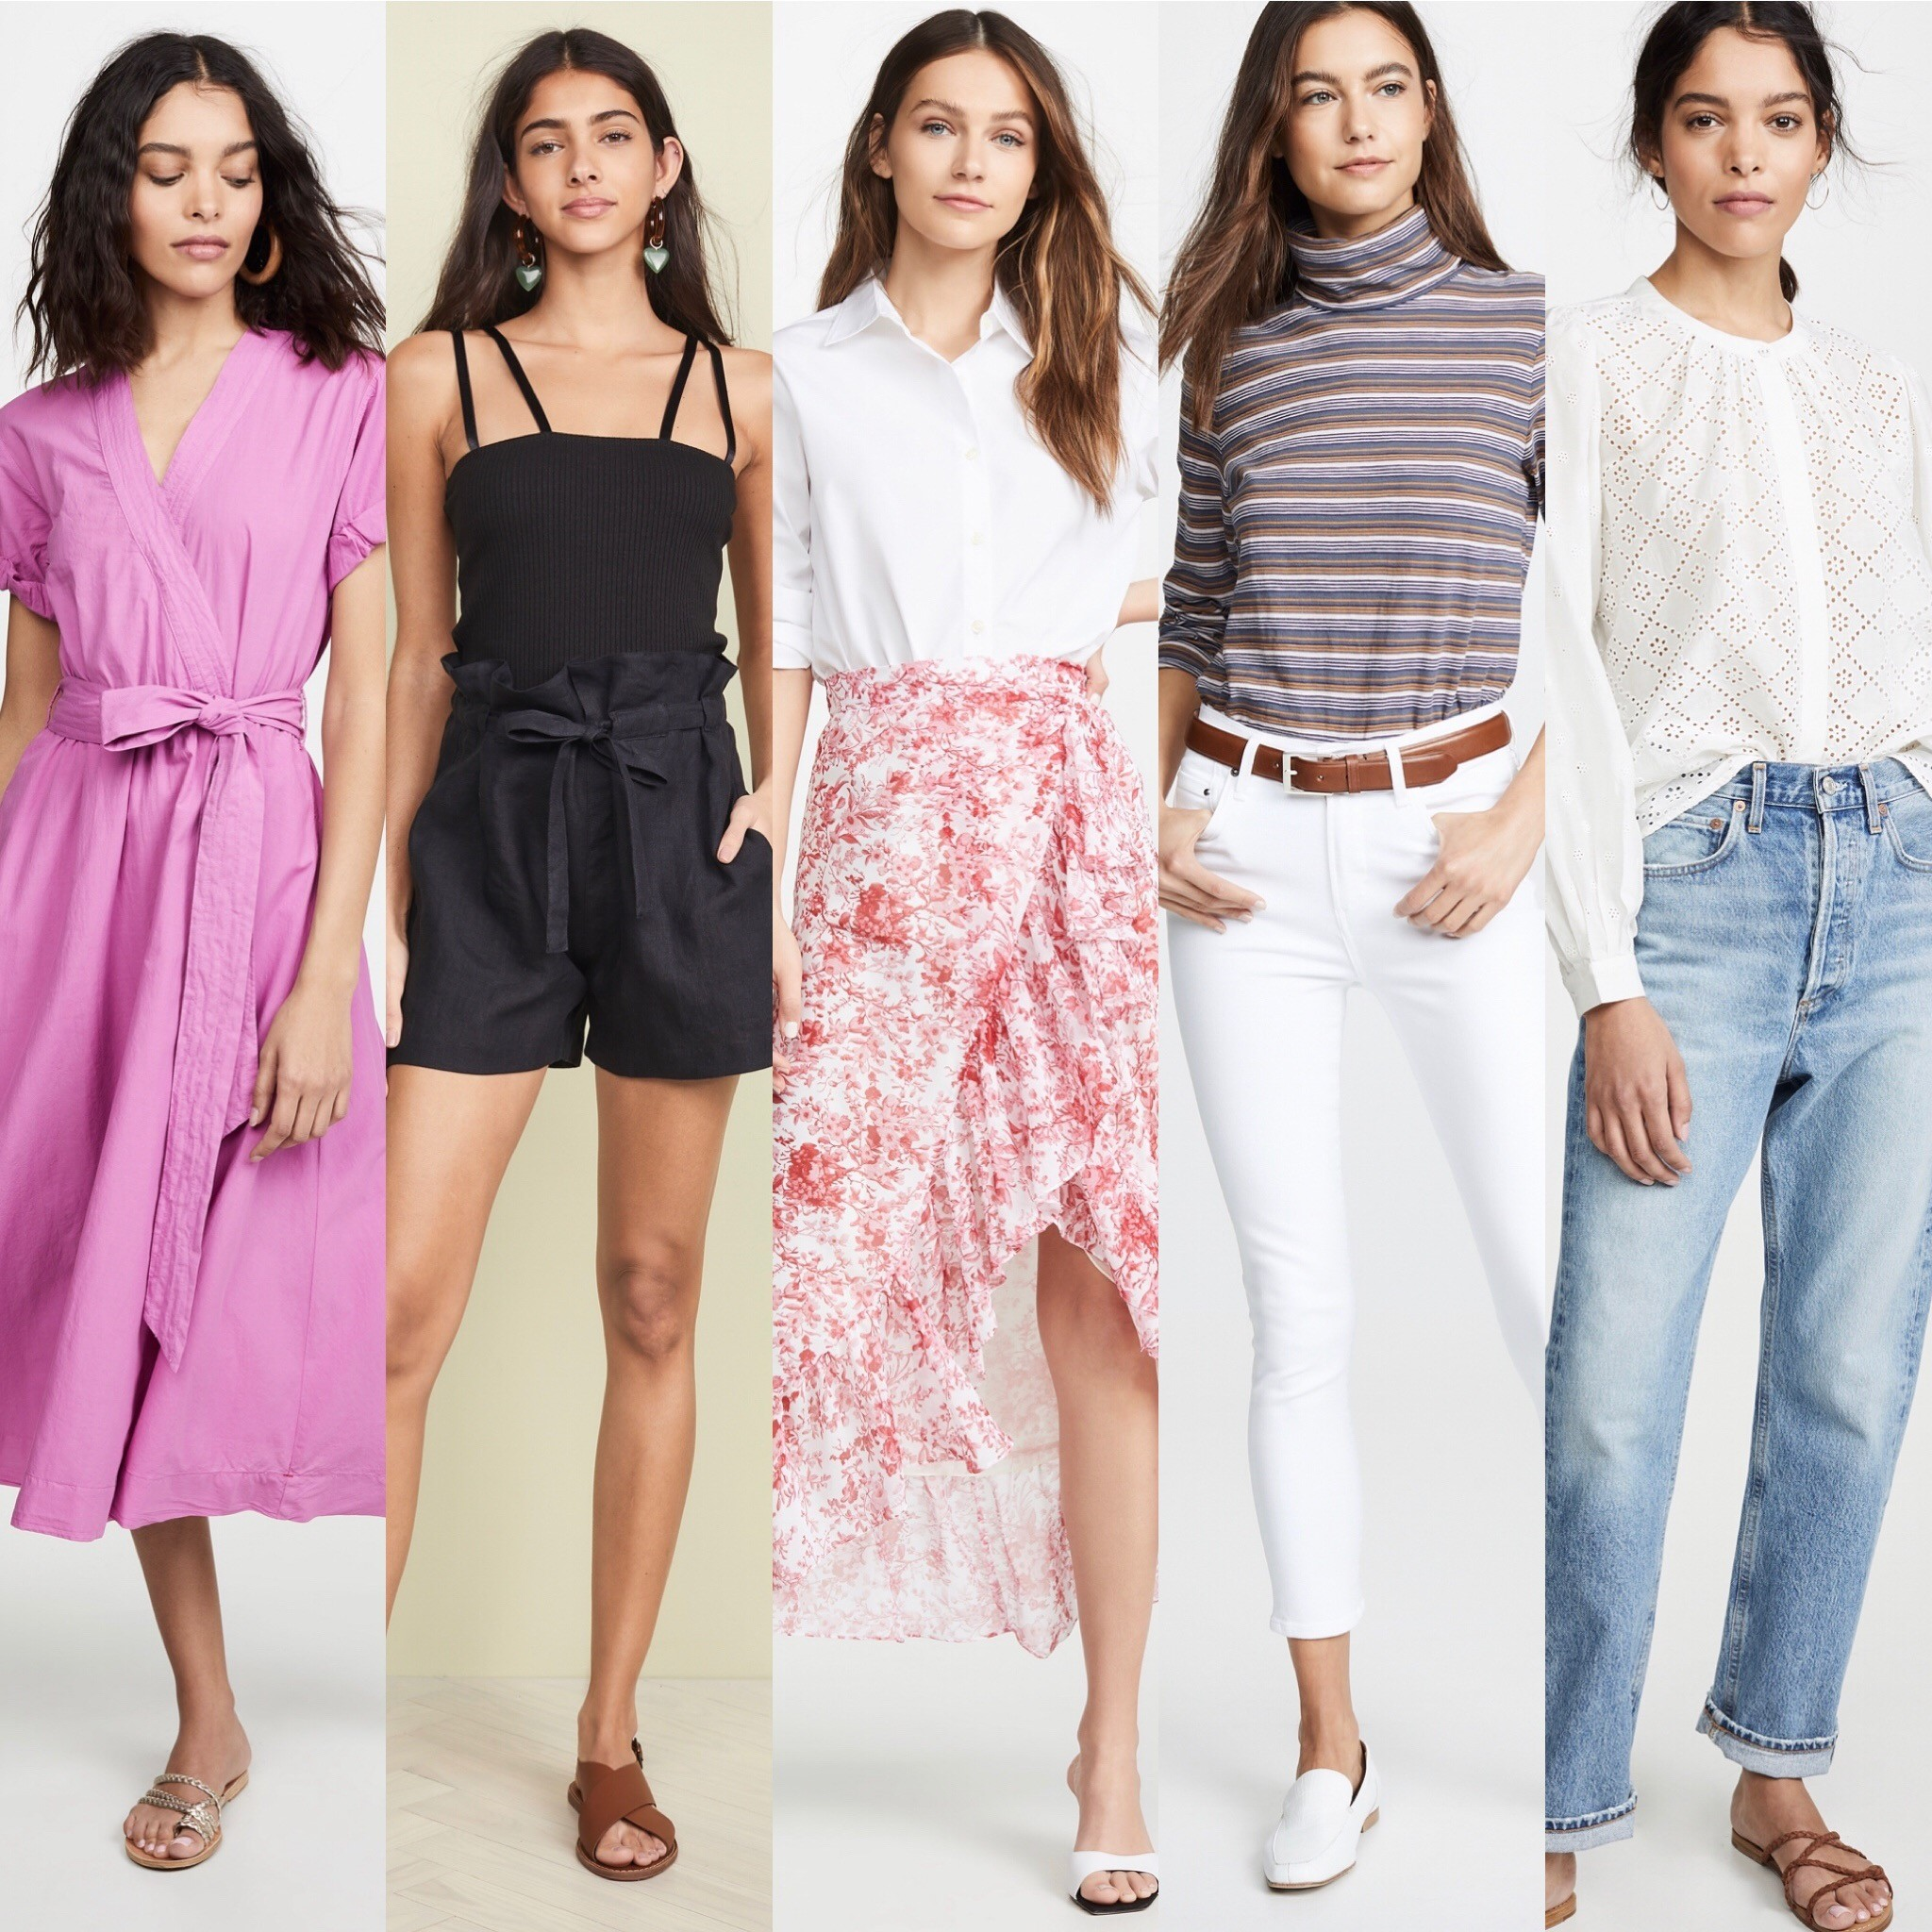 All styles can be found @shopbop online. Mon: xirena. Tues: therangenyc, nililotan. Wed: kule, costarellos. Thurs: madewell, citizensofhumanity. Fri: joie, agolde.